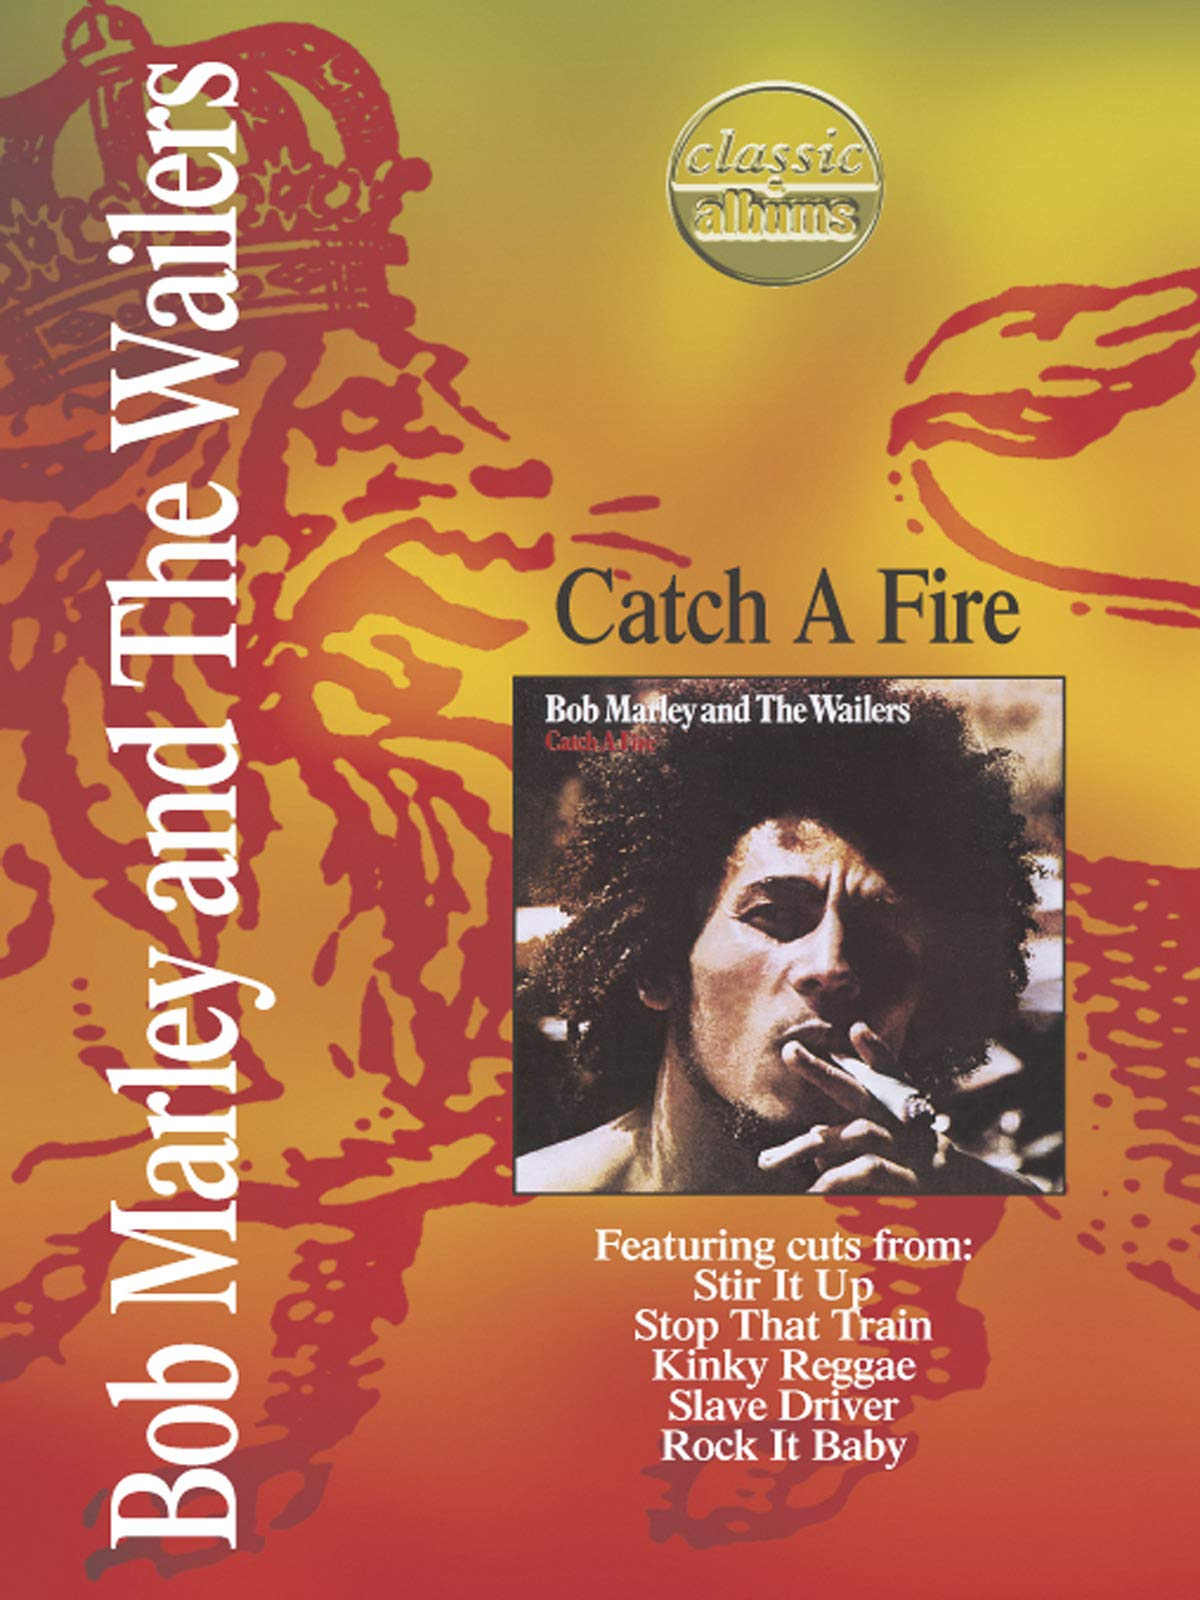 Bob Marley - Catch A Fire (Classic Album) on Amazon Prime Video UK